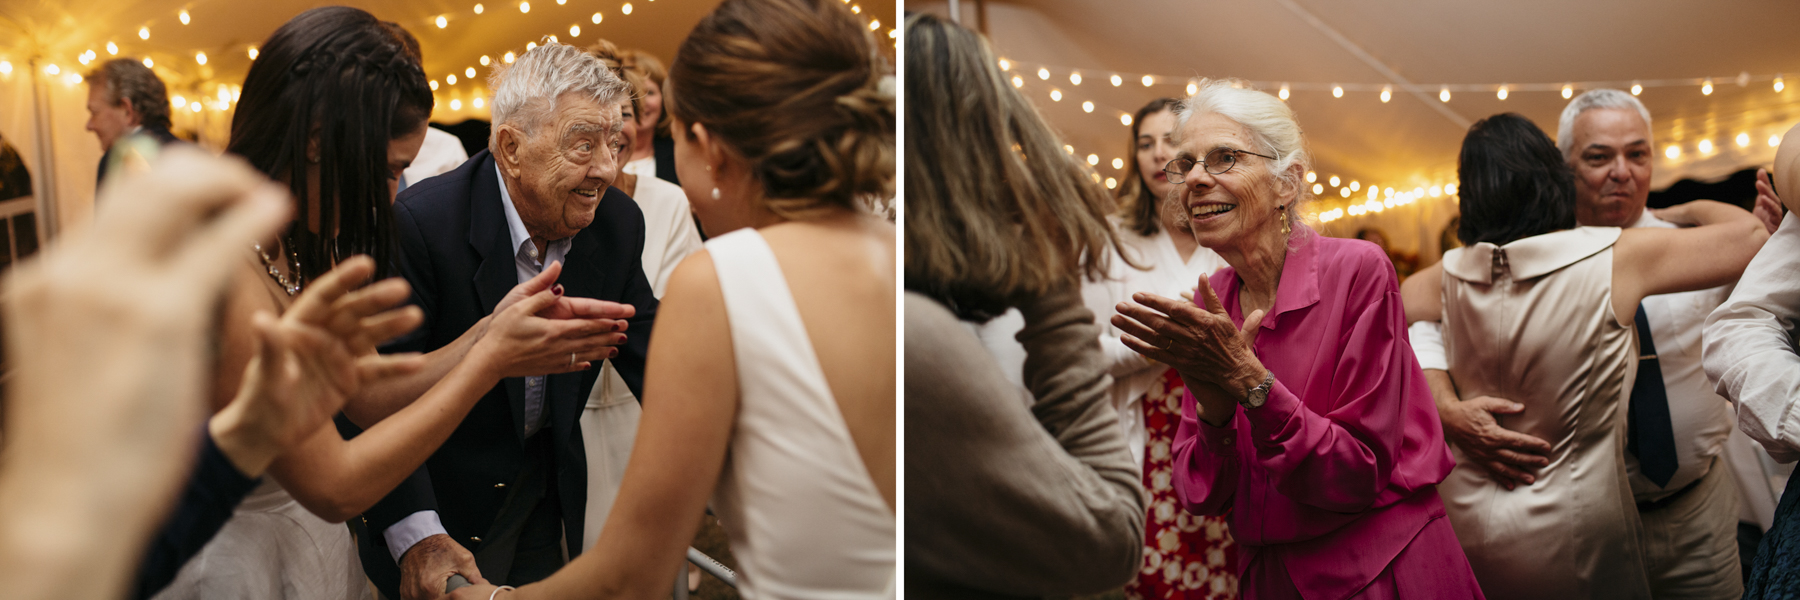 JT_Kaitlyn_cohasset_massachusetts_farm_wedding025.jpg